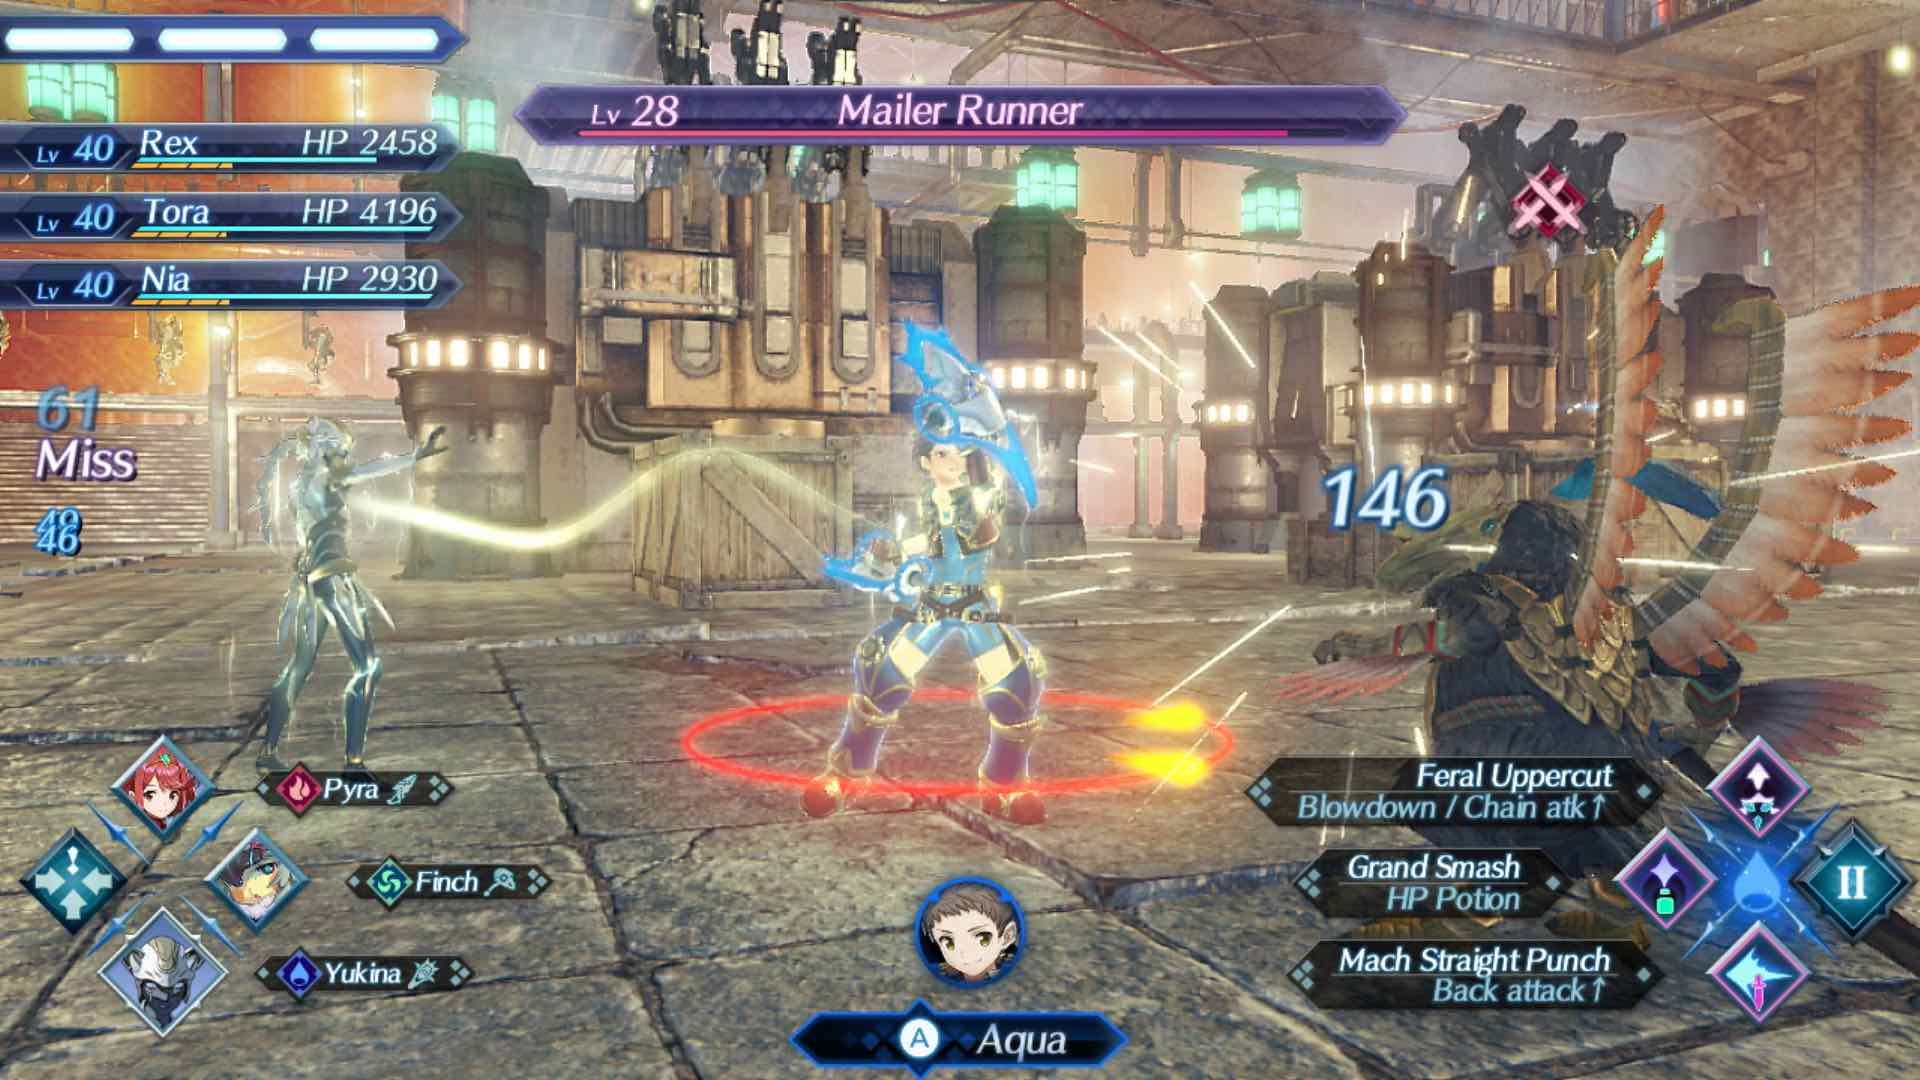 xenoblade-chronicles-2-driver-arts-screenshot